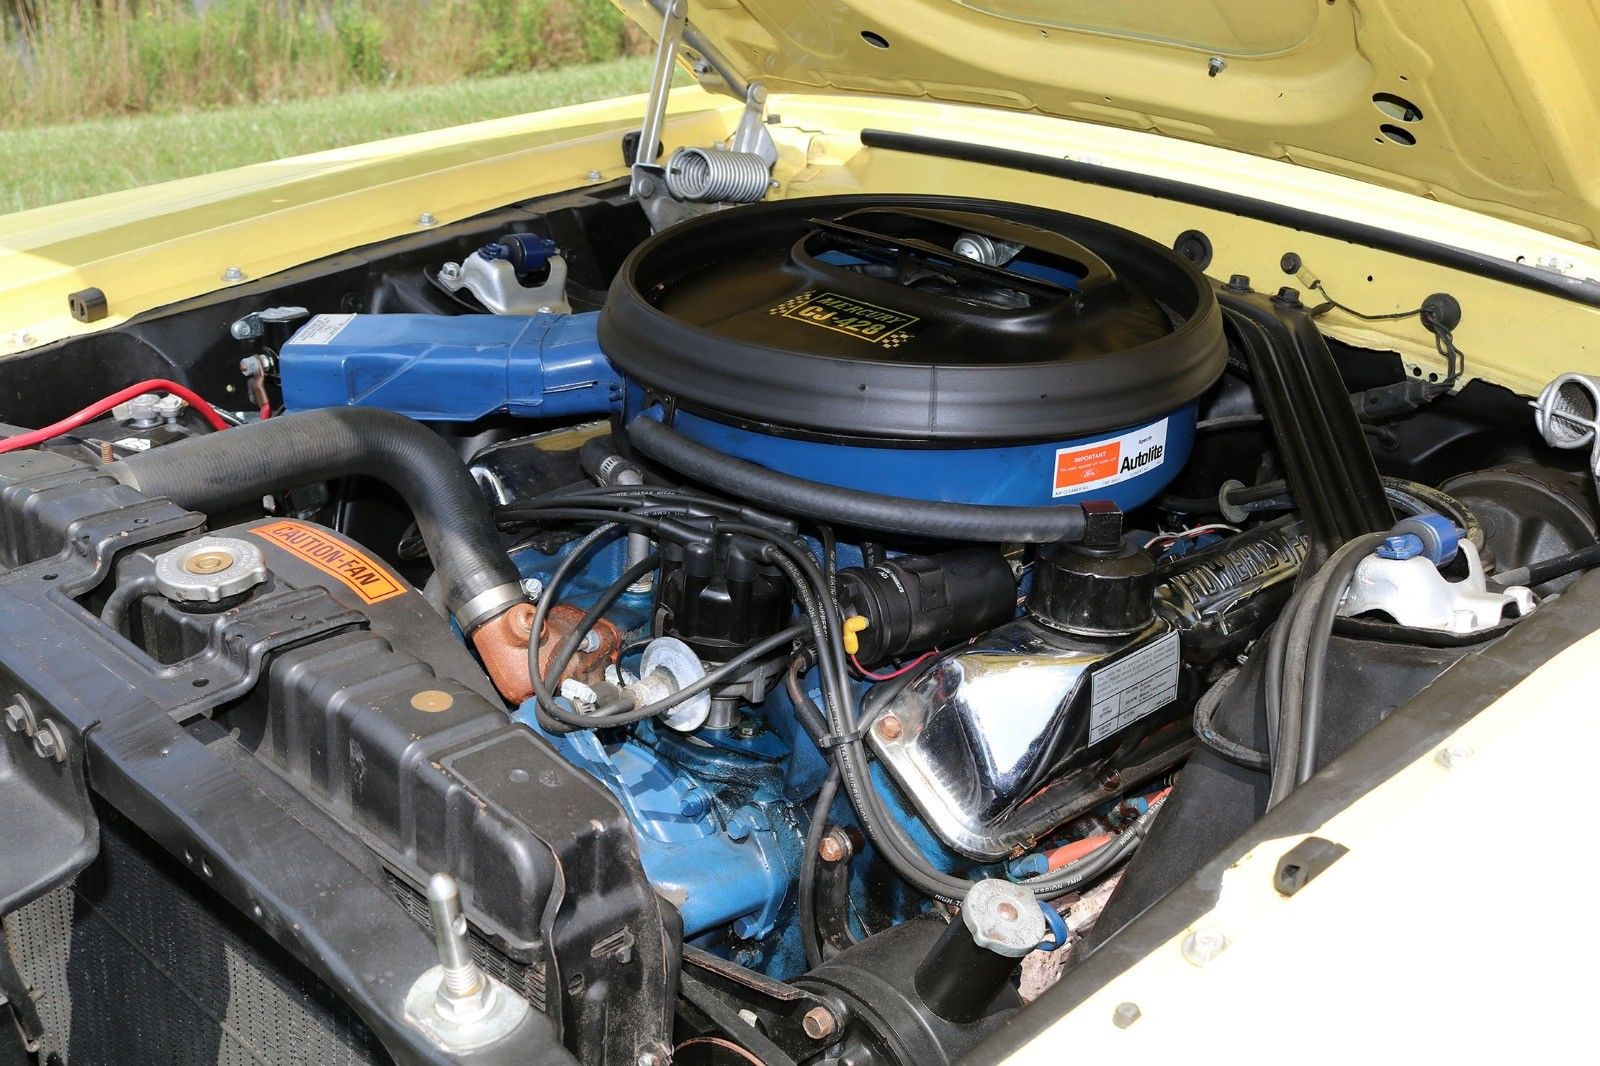 1969 Mercury Cougar Eliminator engine